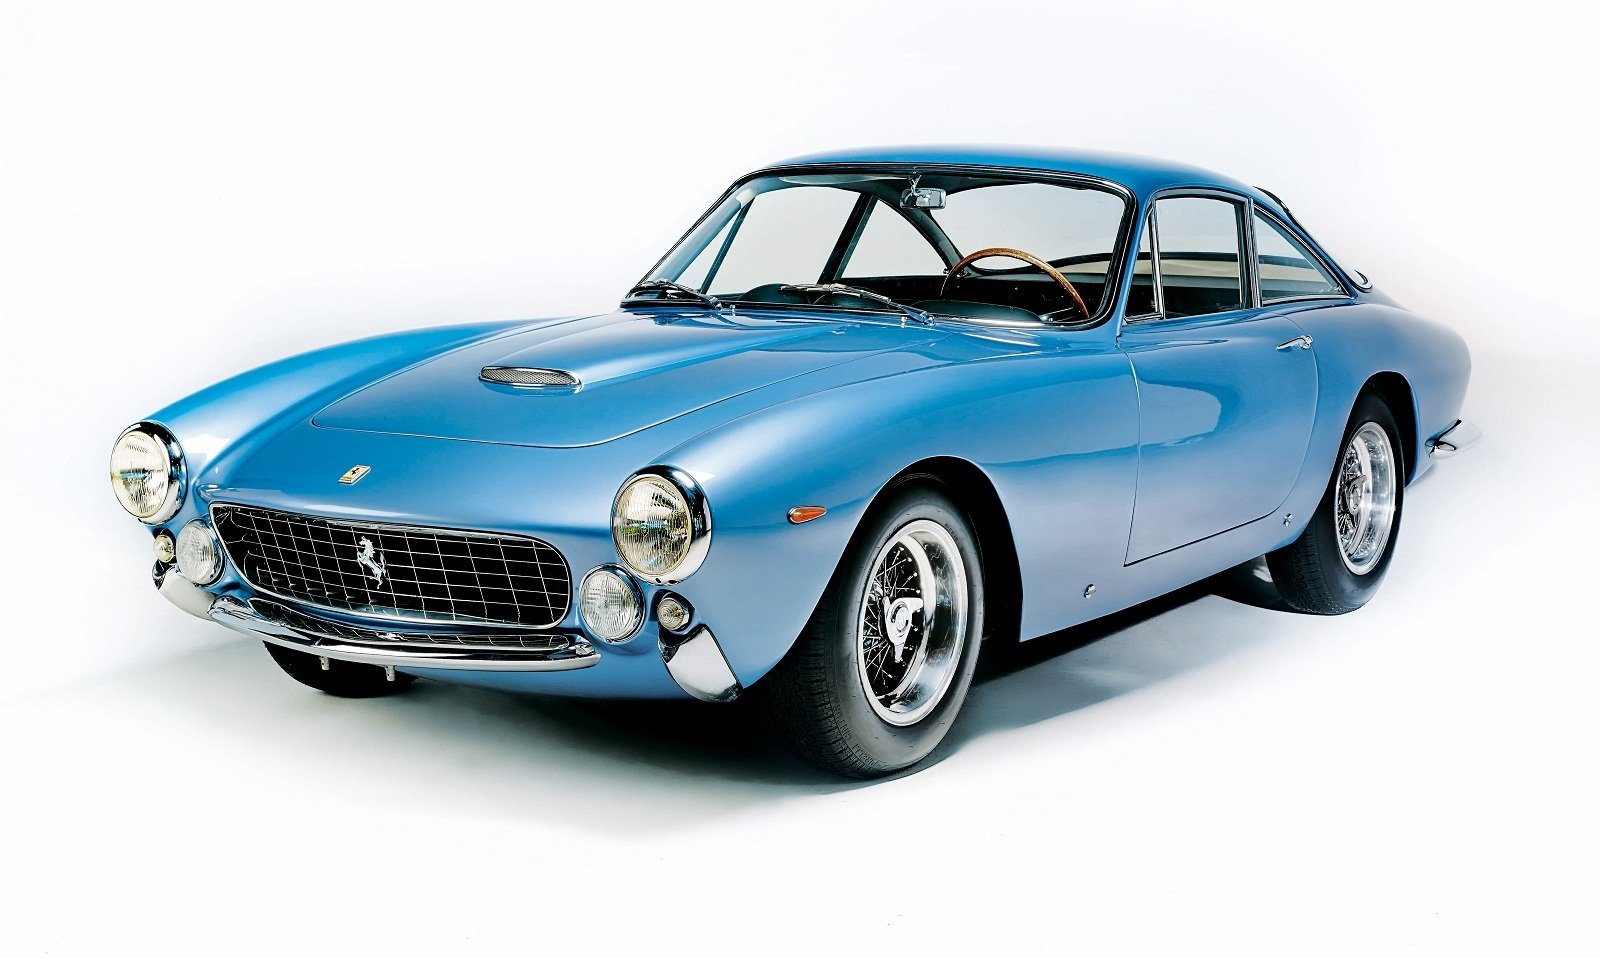 1964 ferrari 250 gt lusso berlinetta review top speed. Black Bedroom Furniture Sets. Home Design Ideas